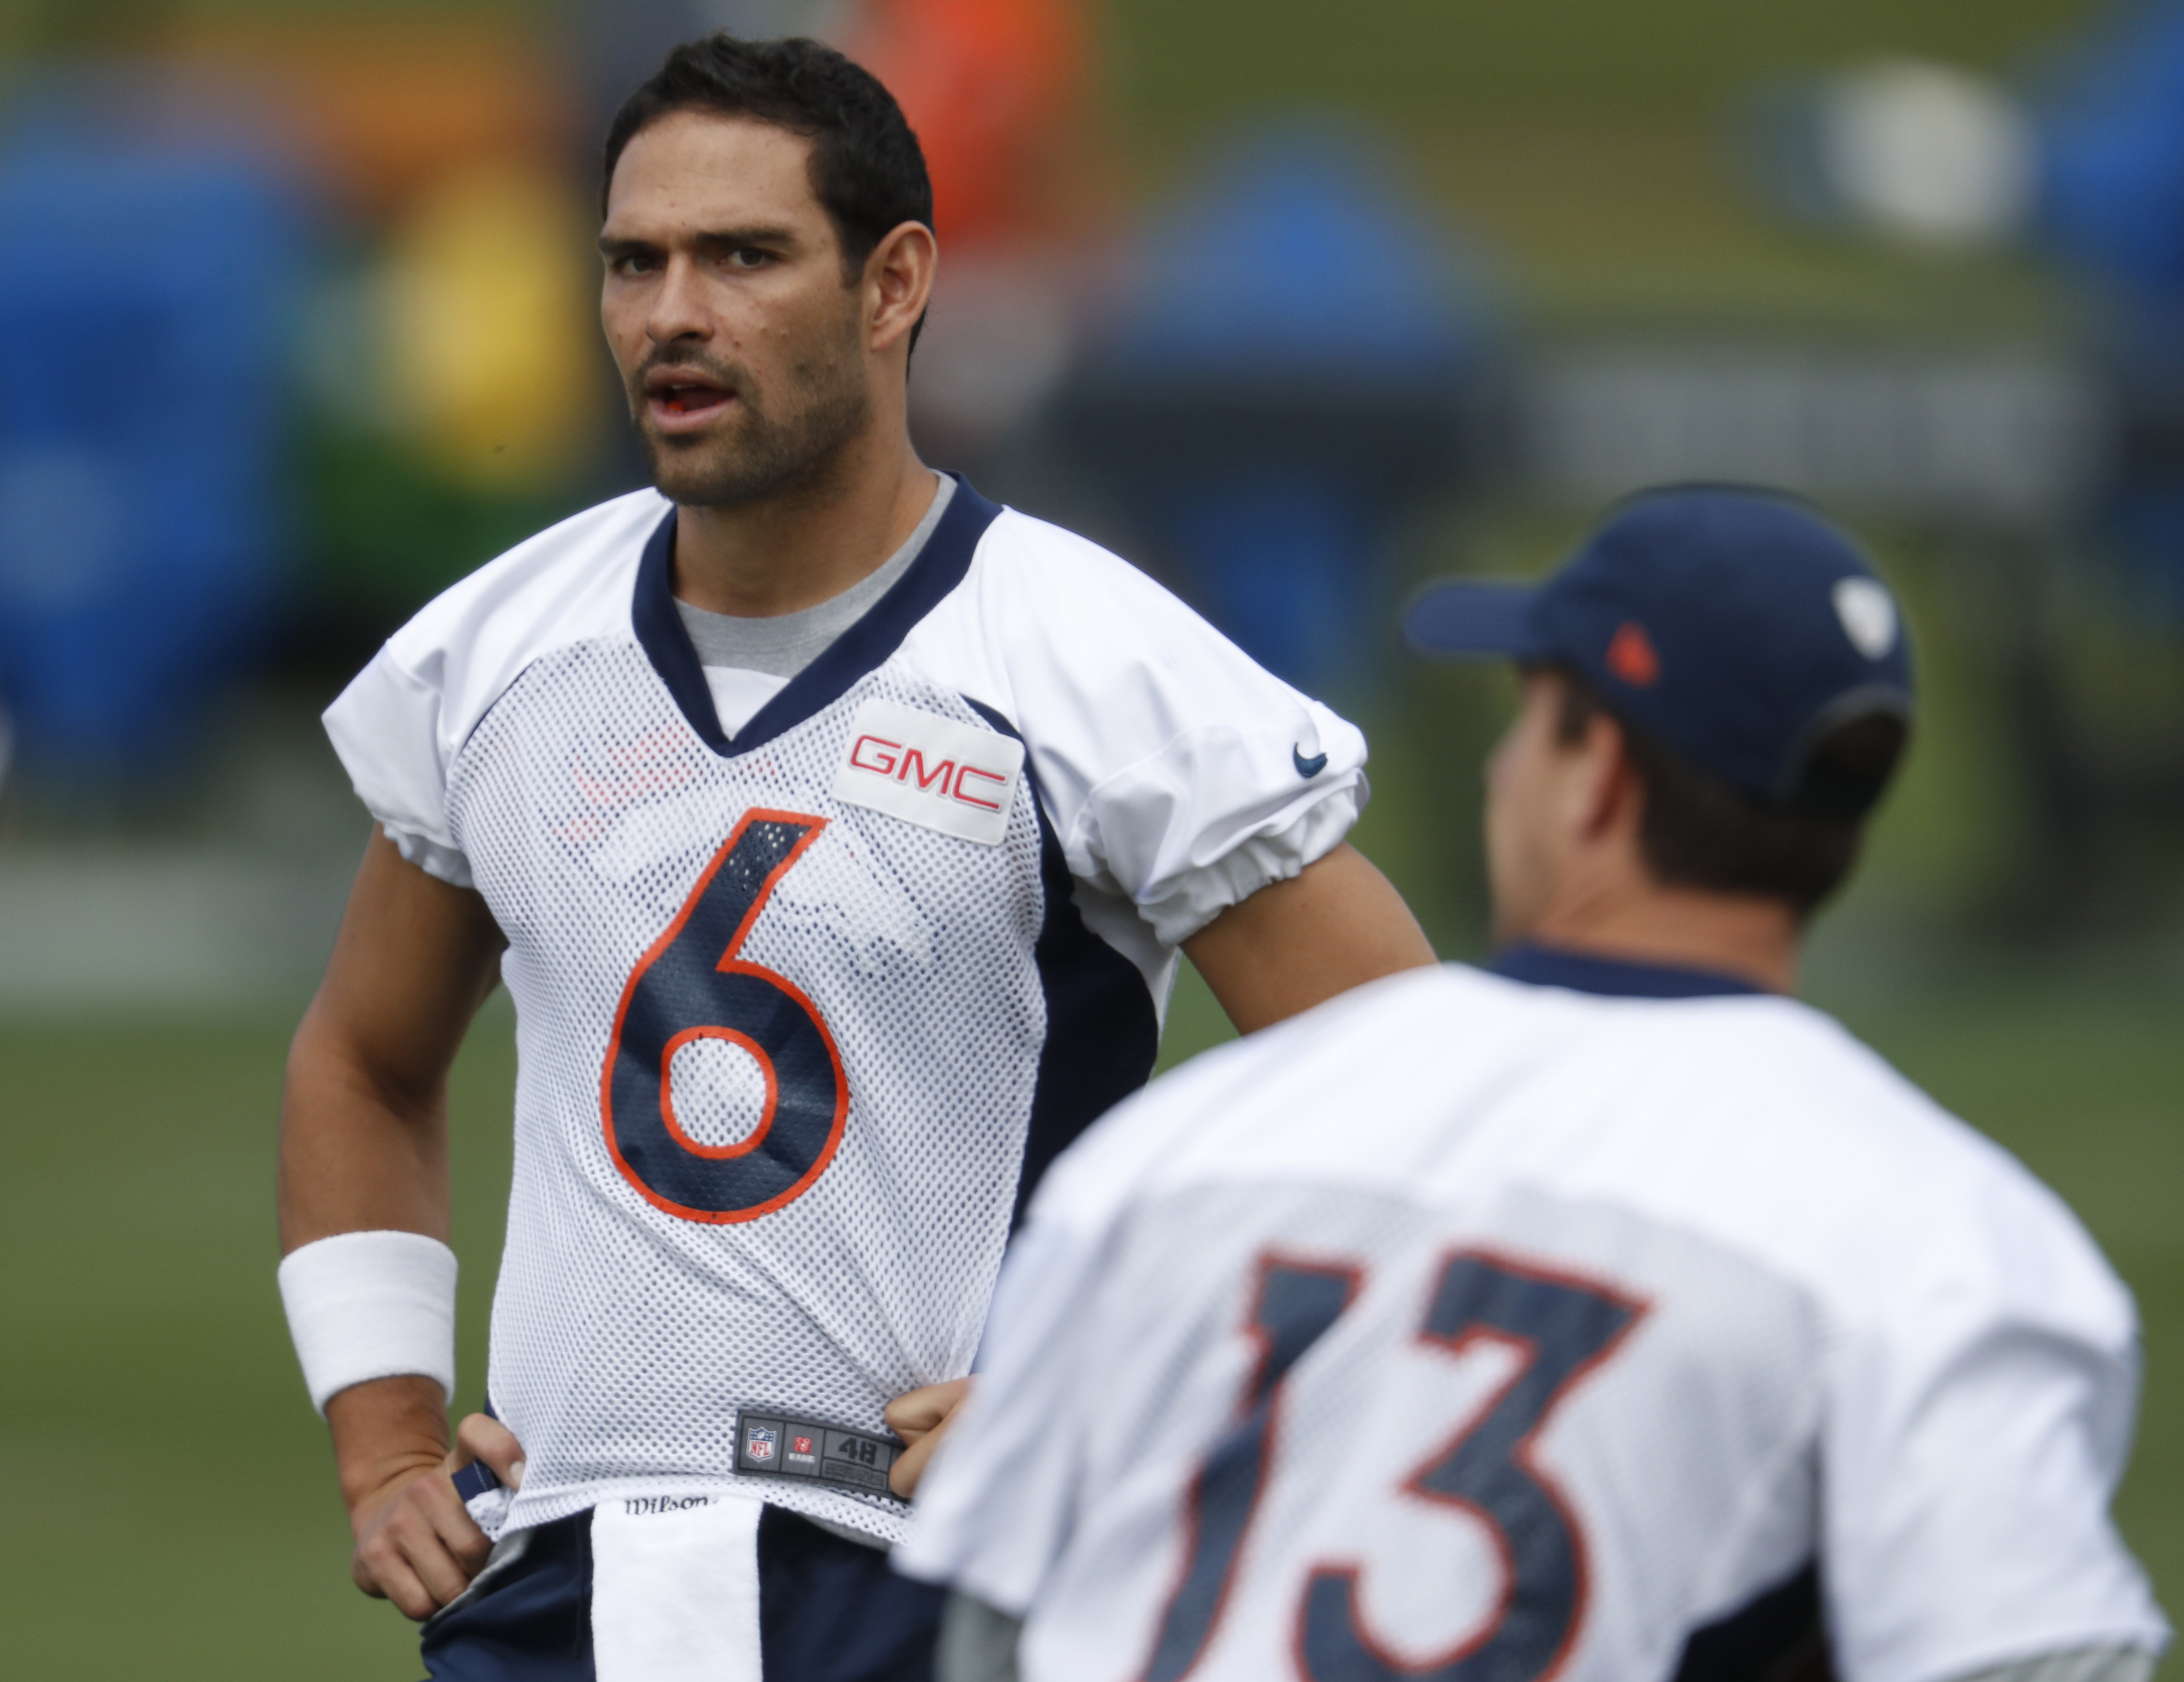 Denver Broncos quarterback Mark Sanchez, back, looks as as quarterback Trevor Siemian takes part in a drill during the team's NFL football practice at the Broncos' headquarters on Monday, Aug. 29, 2016, in Englewood, Colo. (AP Photo/David Zalubowski)